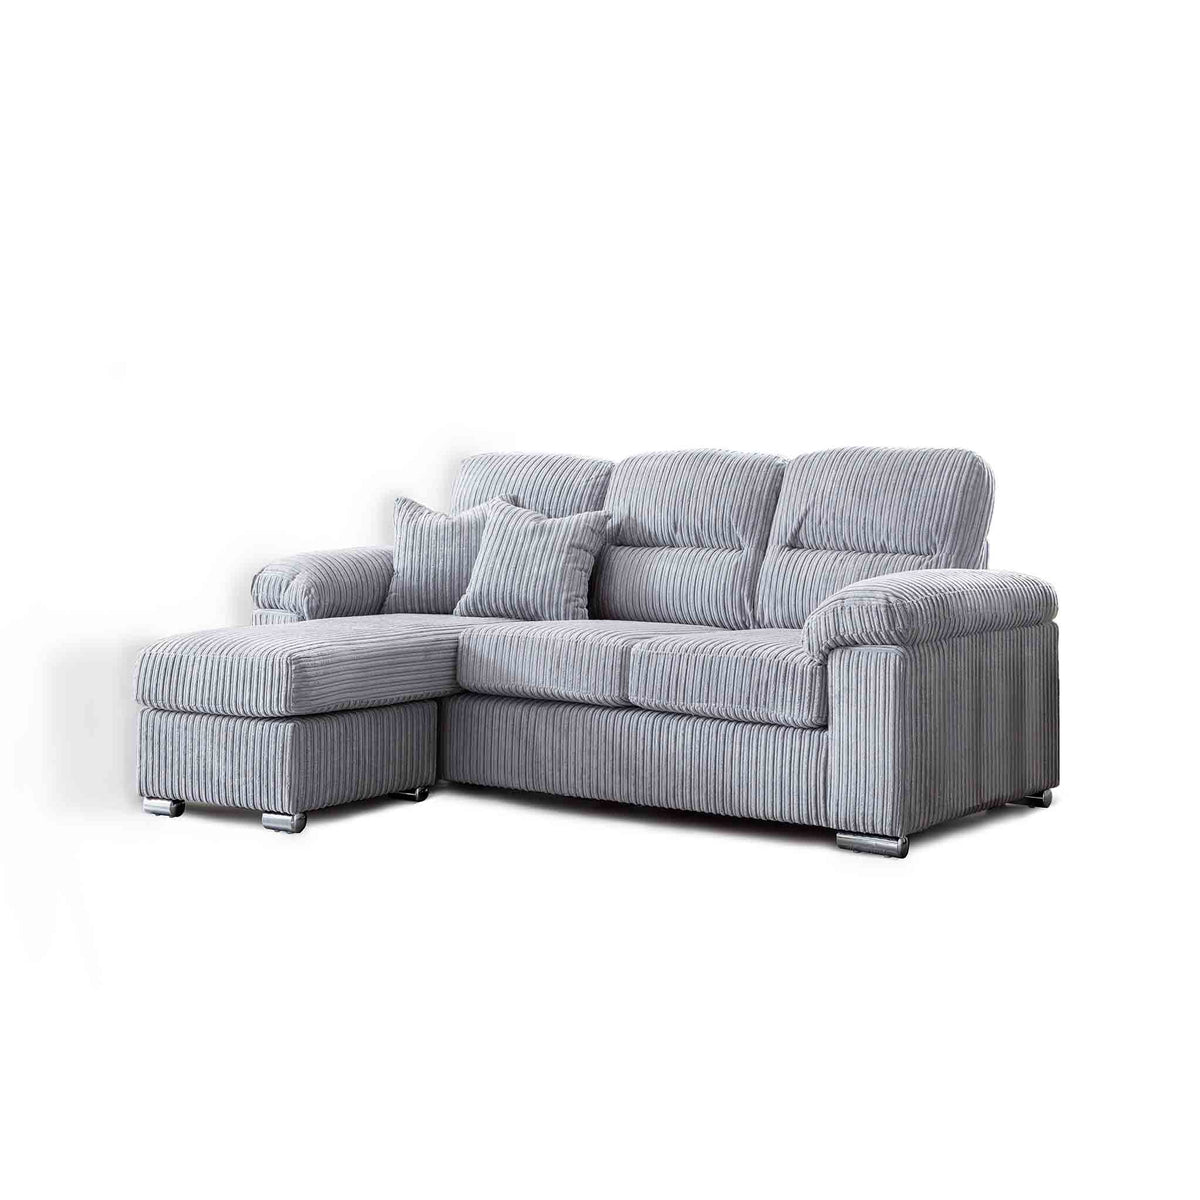 Amalfi Silver Corner Chaise Fabric Sofa from Roseland Furniture